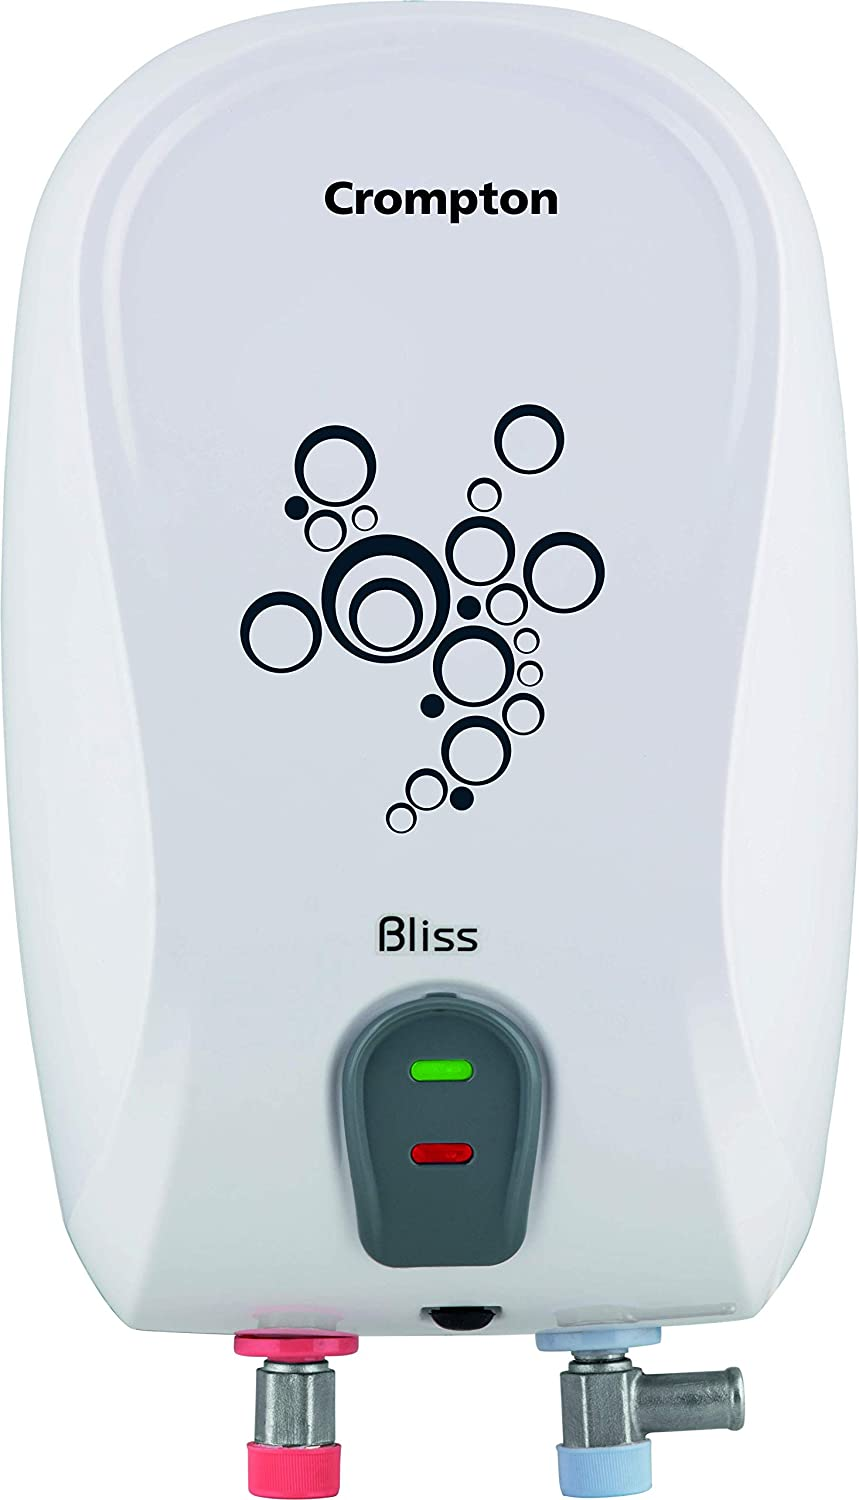 Crompton Bliss 3-Litre Instant Water Heater (White)